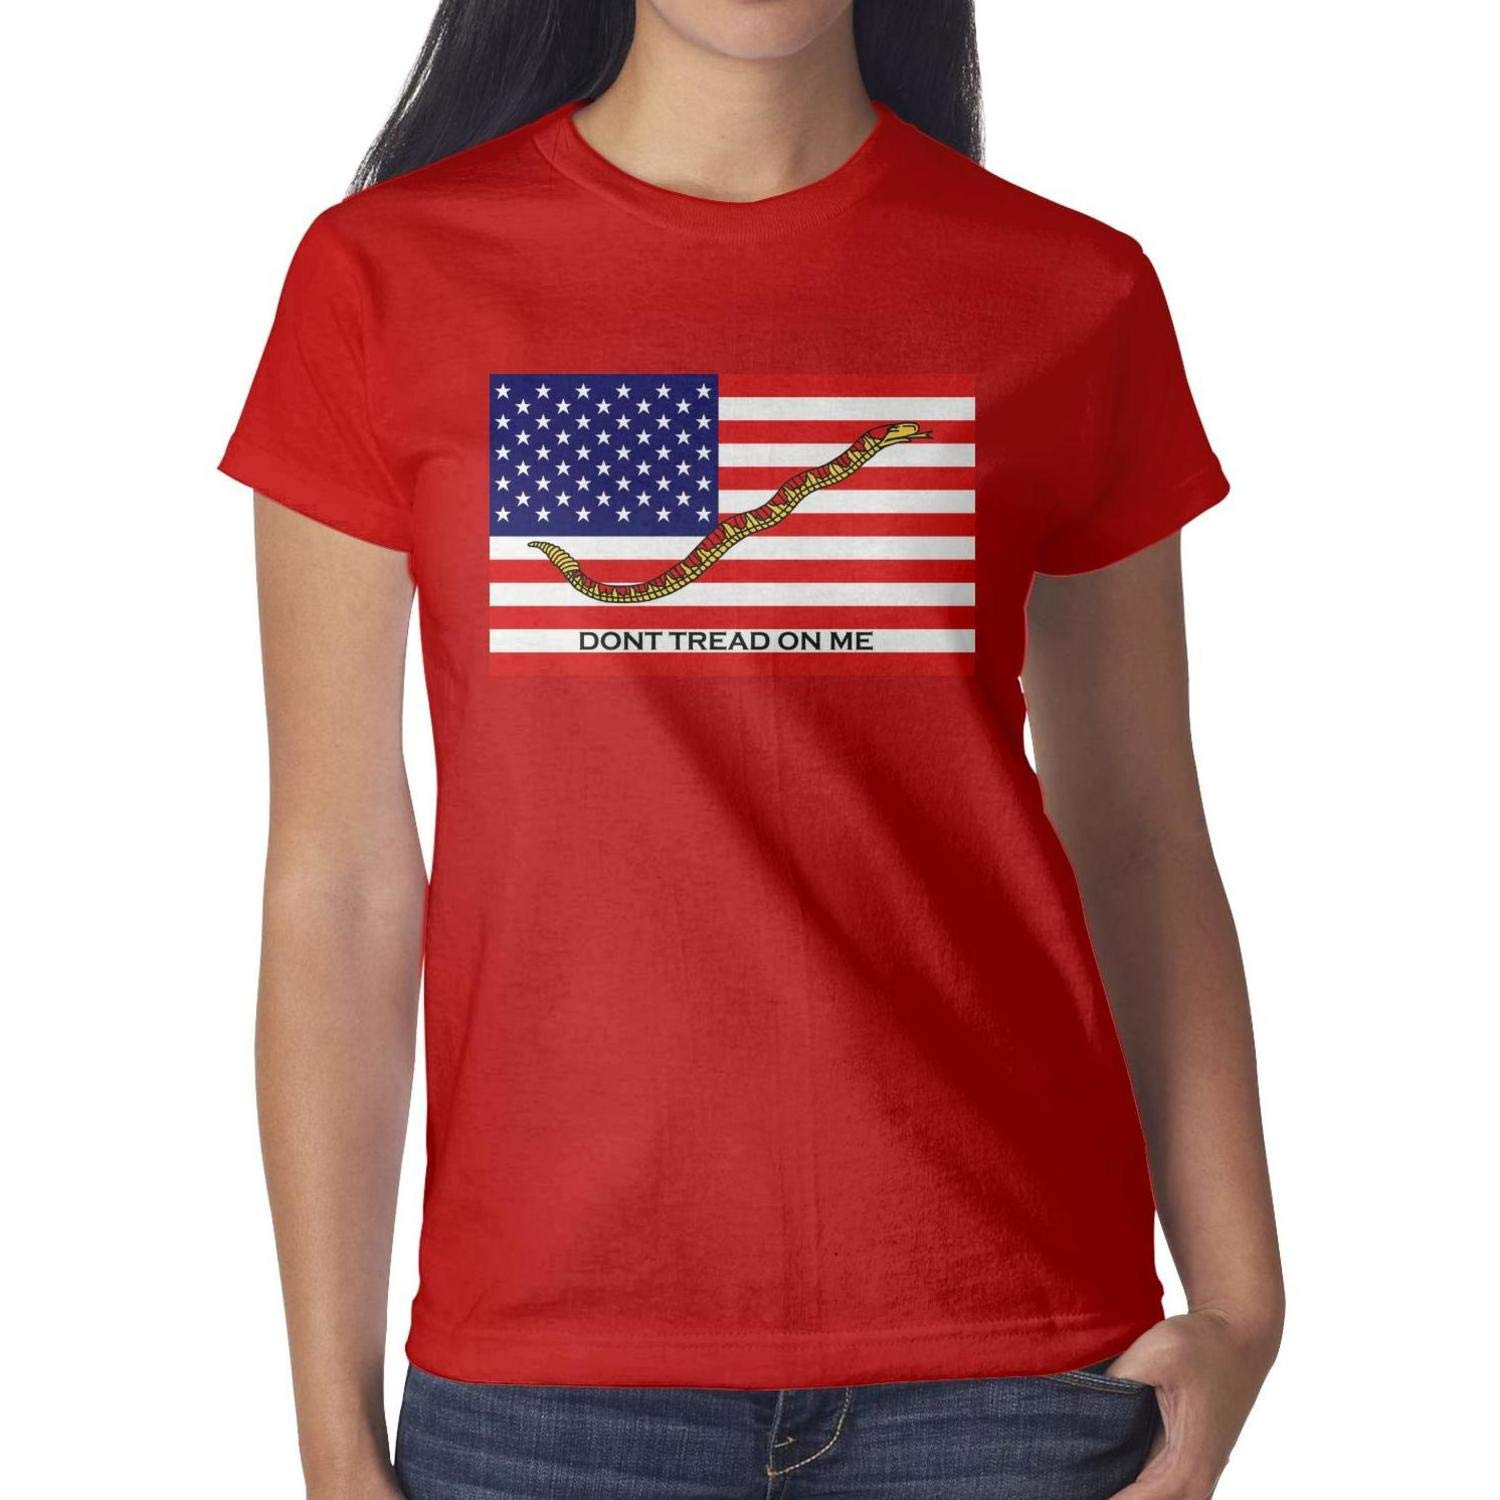 Tee Essential Cable T Shirts Girls Tops Star Jack Tri-Blend